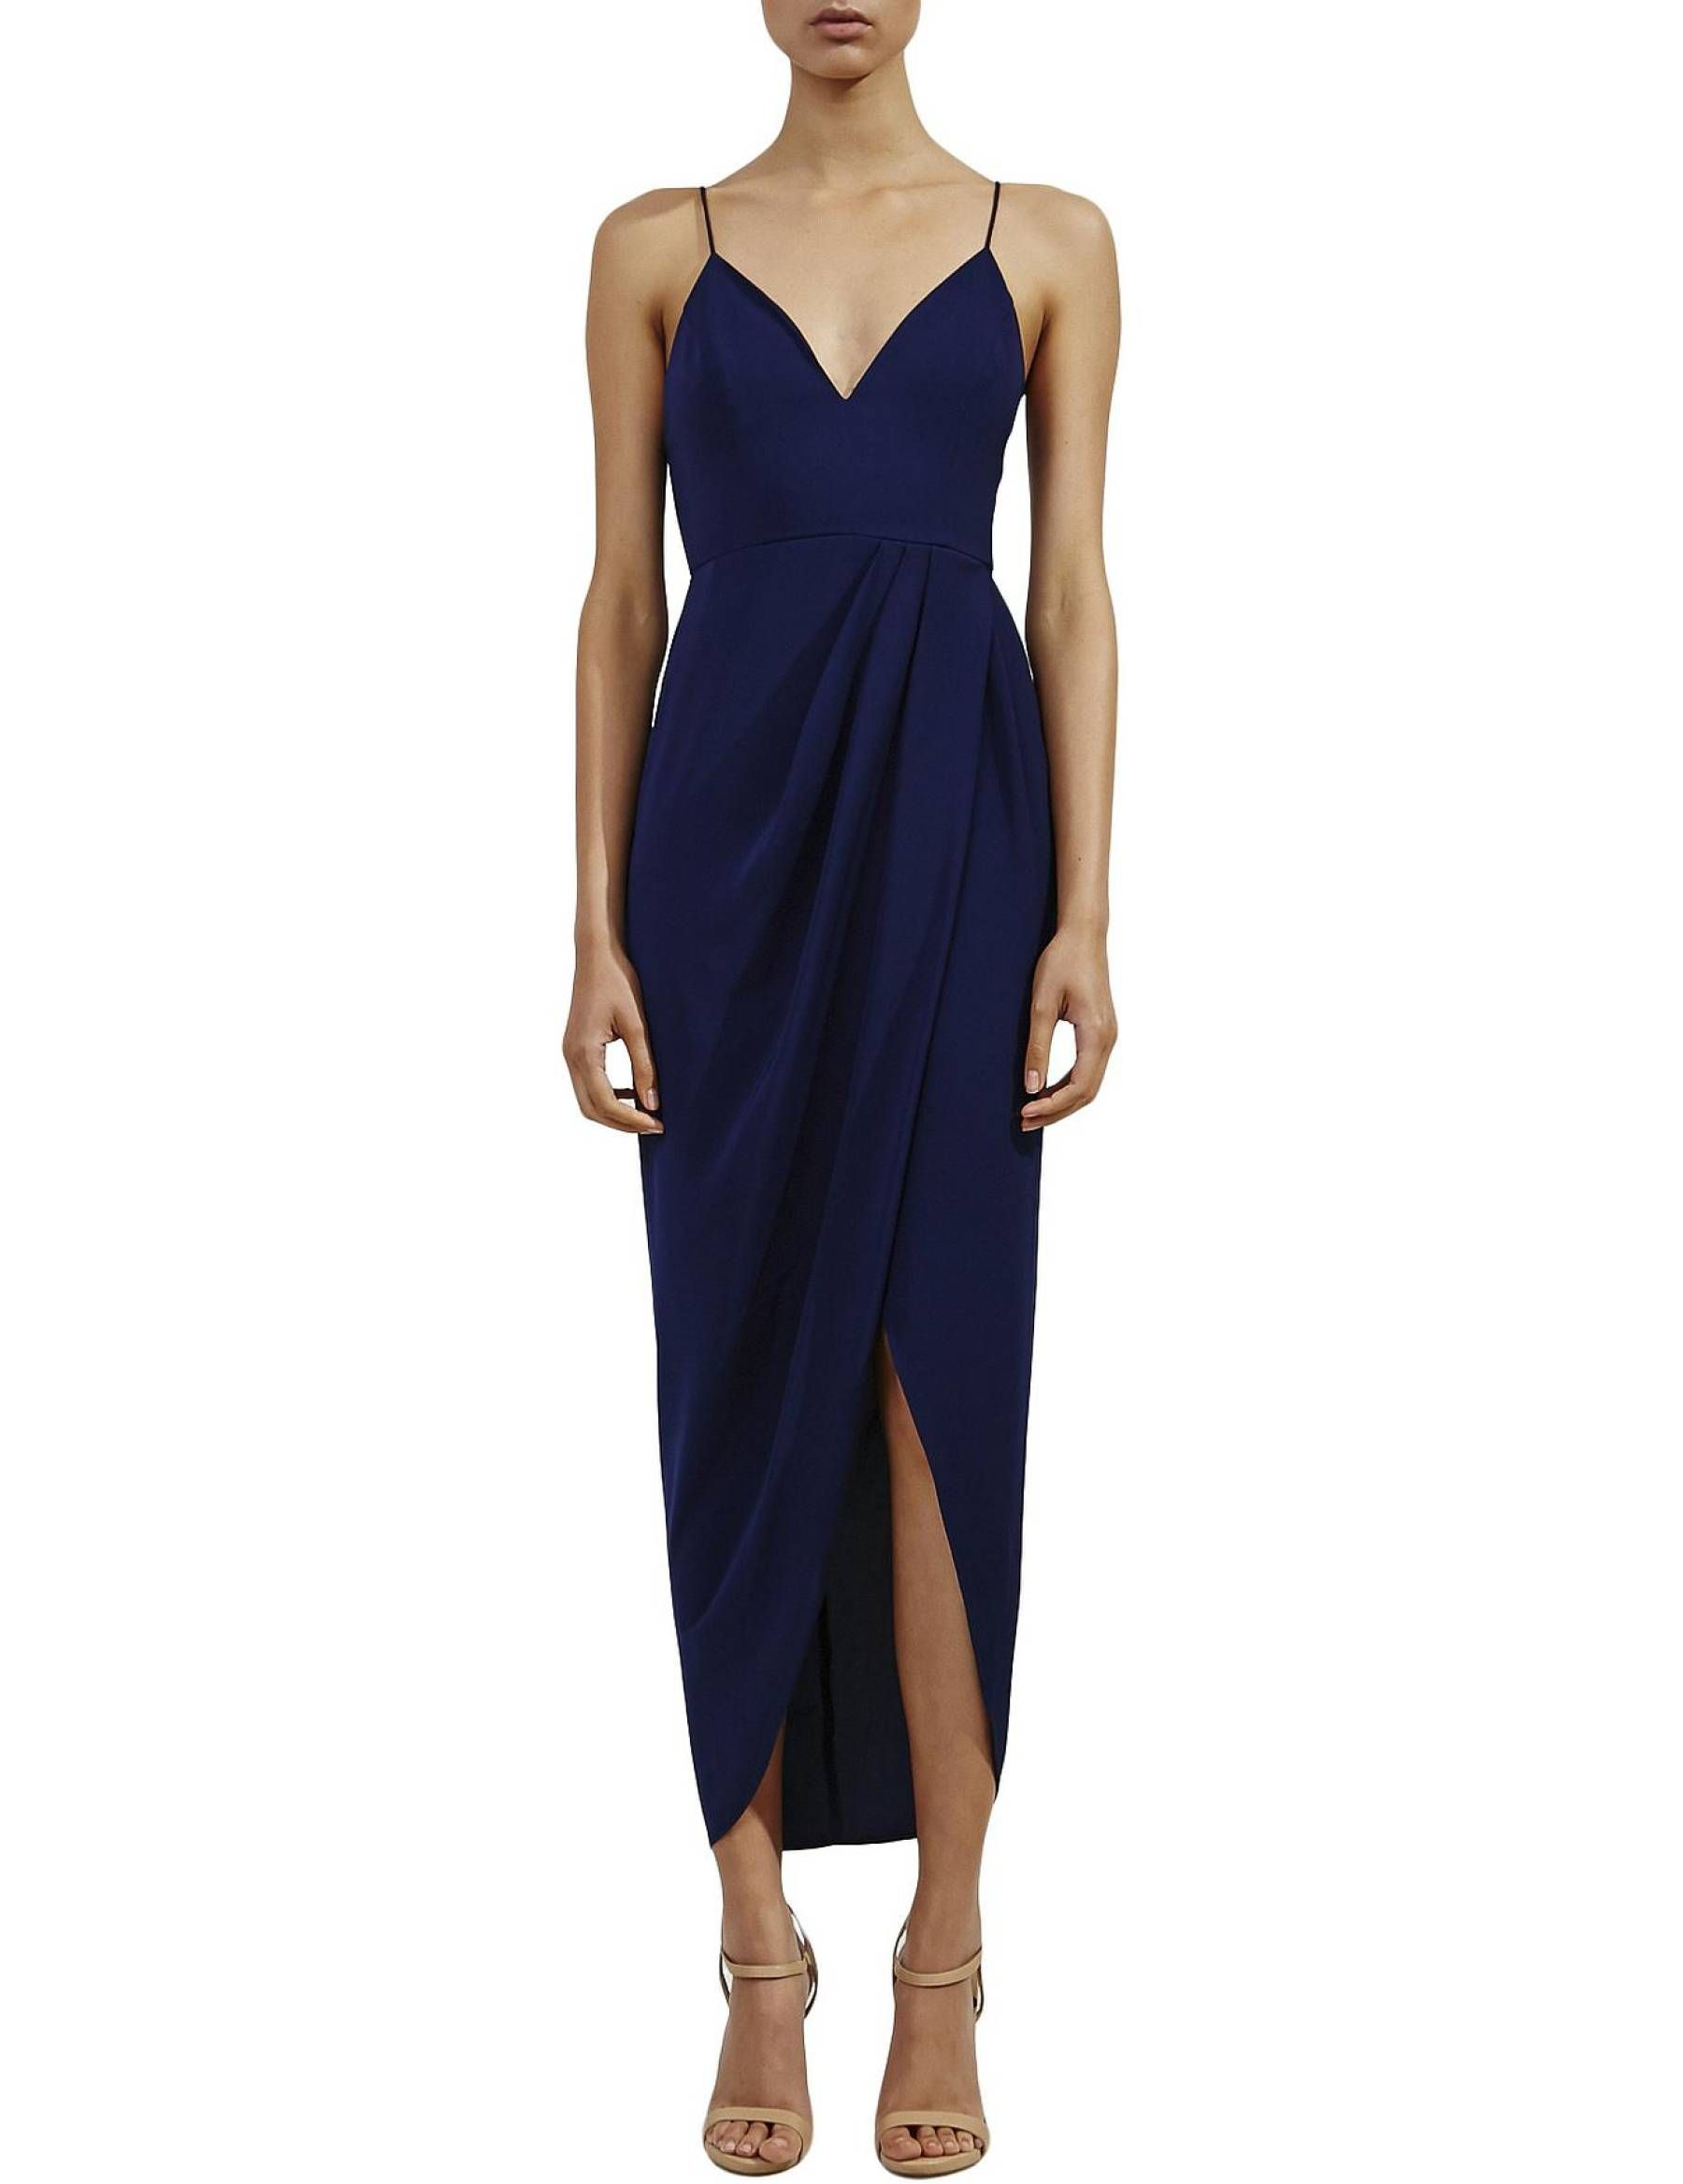 17f8aa5b1dea1 David Jones - Shona Joy Core Cocktail Midi Dress | Maxi Love | Midi ...